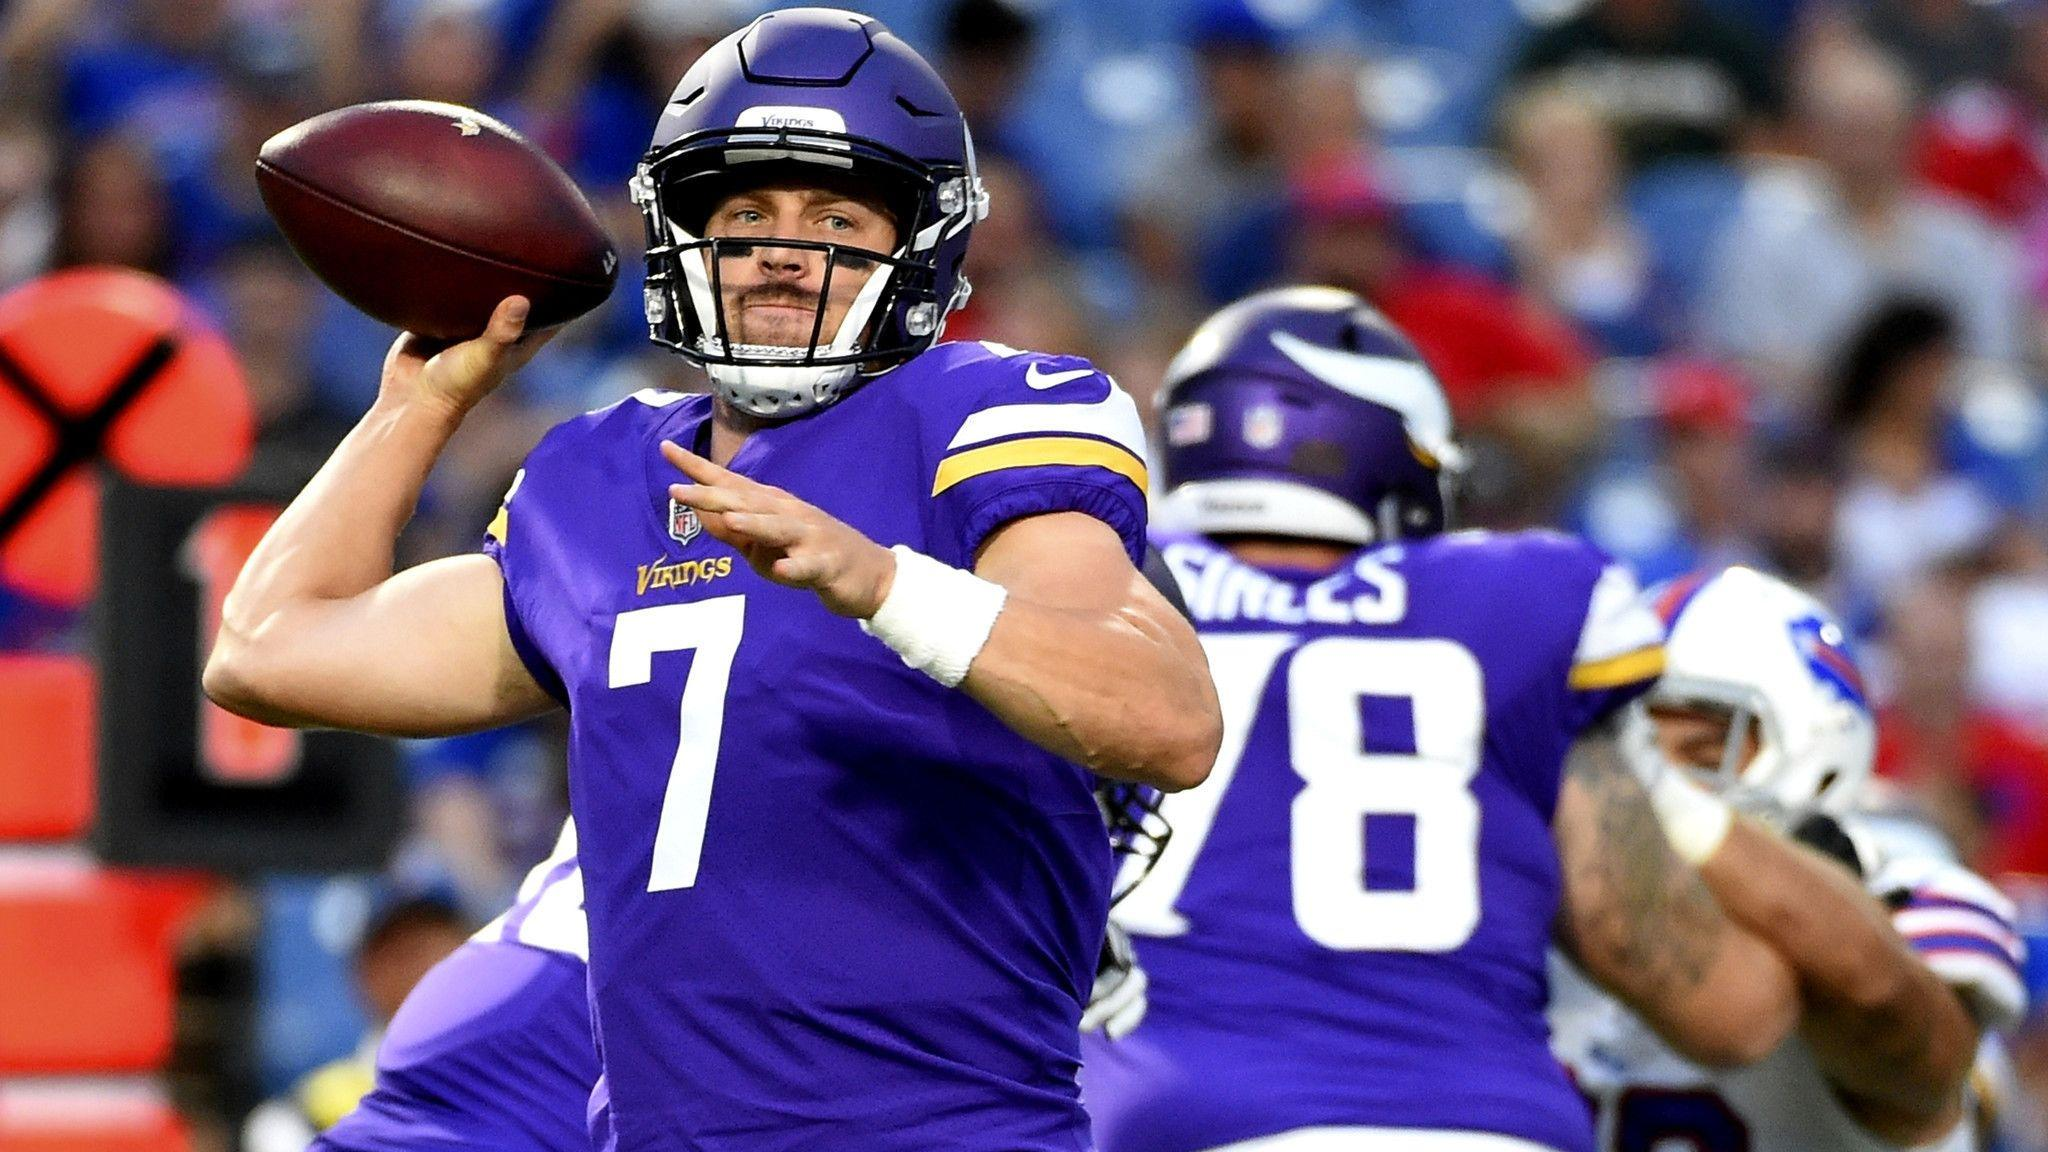 NFL notes: Case Keenum has a solid debut for the Vikings - LA Times